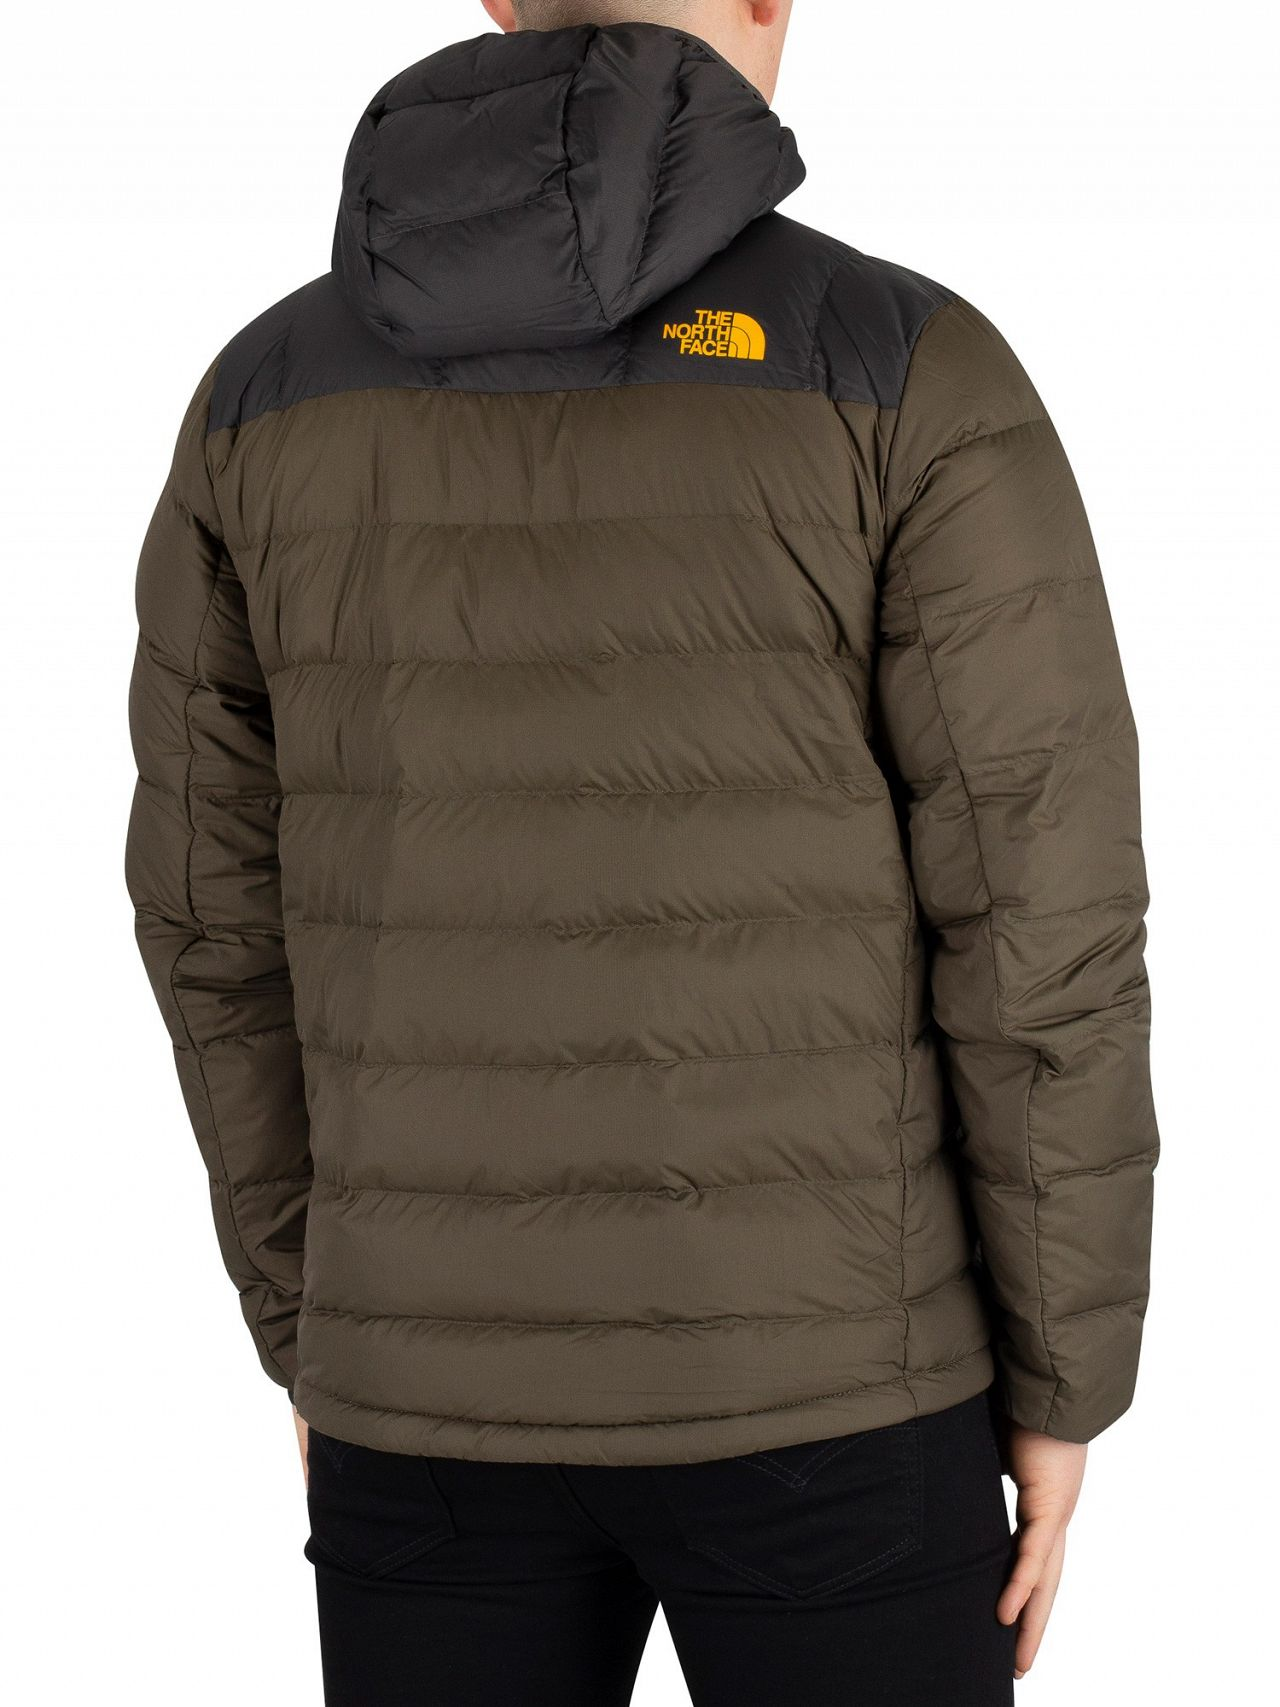 ab65d0cb The North Face New Taupe Green/Asphalt Grey M La Paz Hooded Jacket ...